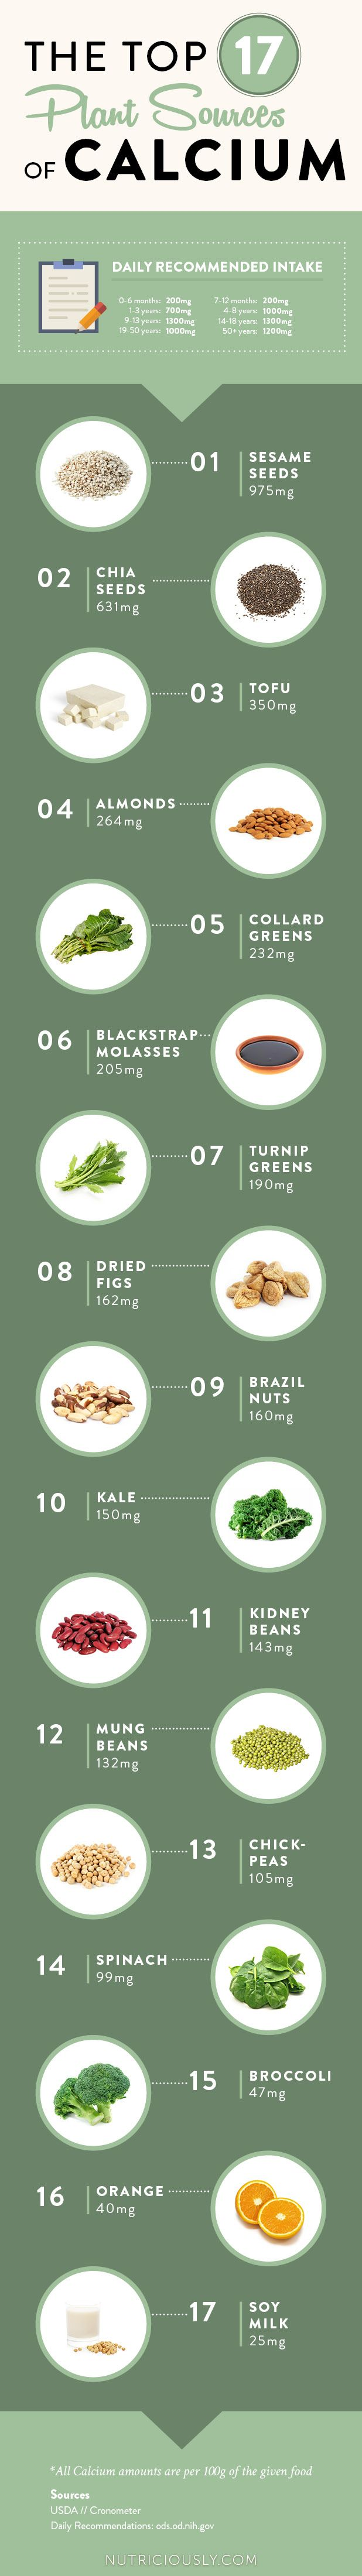 List of 17 high calcium plant-based foods: #health #Calcium #plantbased #healthyliving #sydneymedicalcentre #medicalcentresydneycbd #cbdmedicalcentre #doctormedicalcentre #sydneymedicalpractice